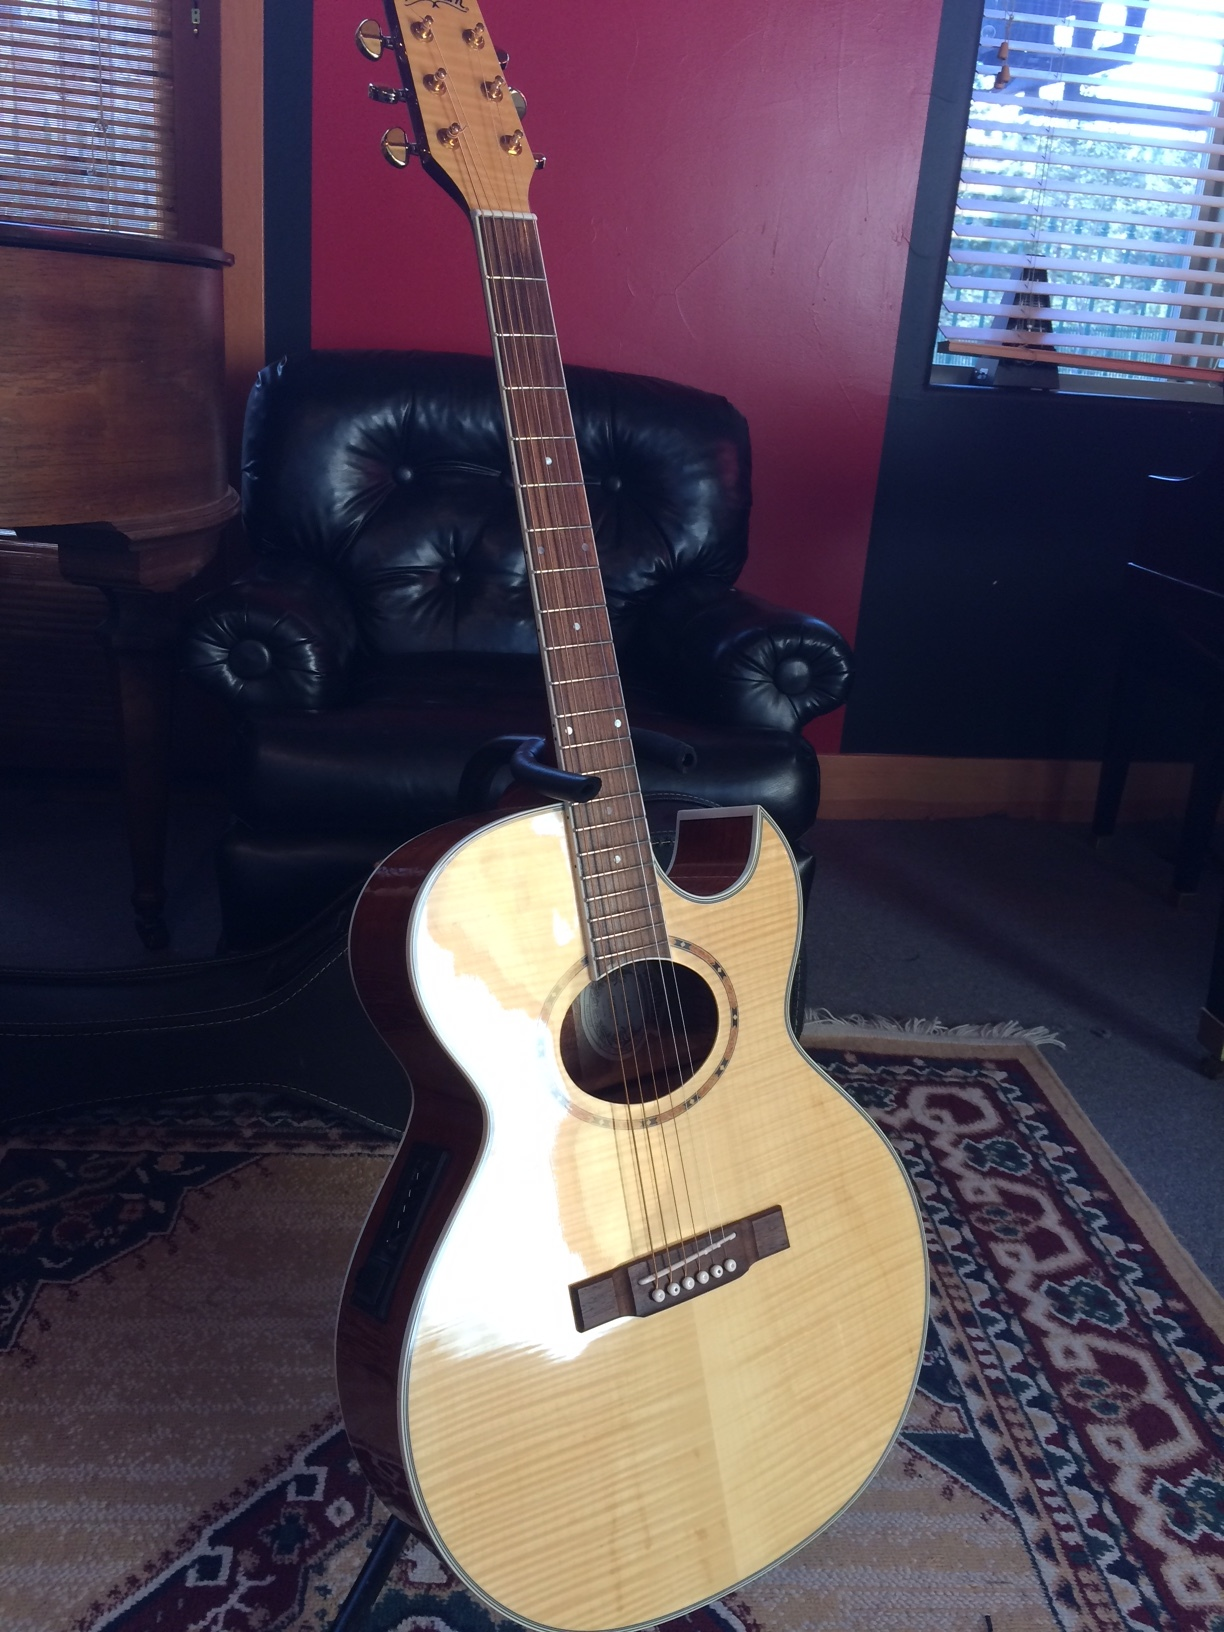 Washburn AcousticElectric guitar with coffin case.JPG